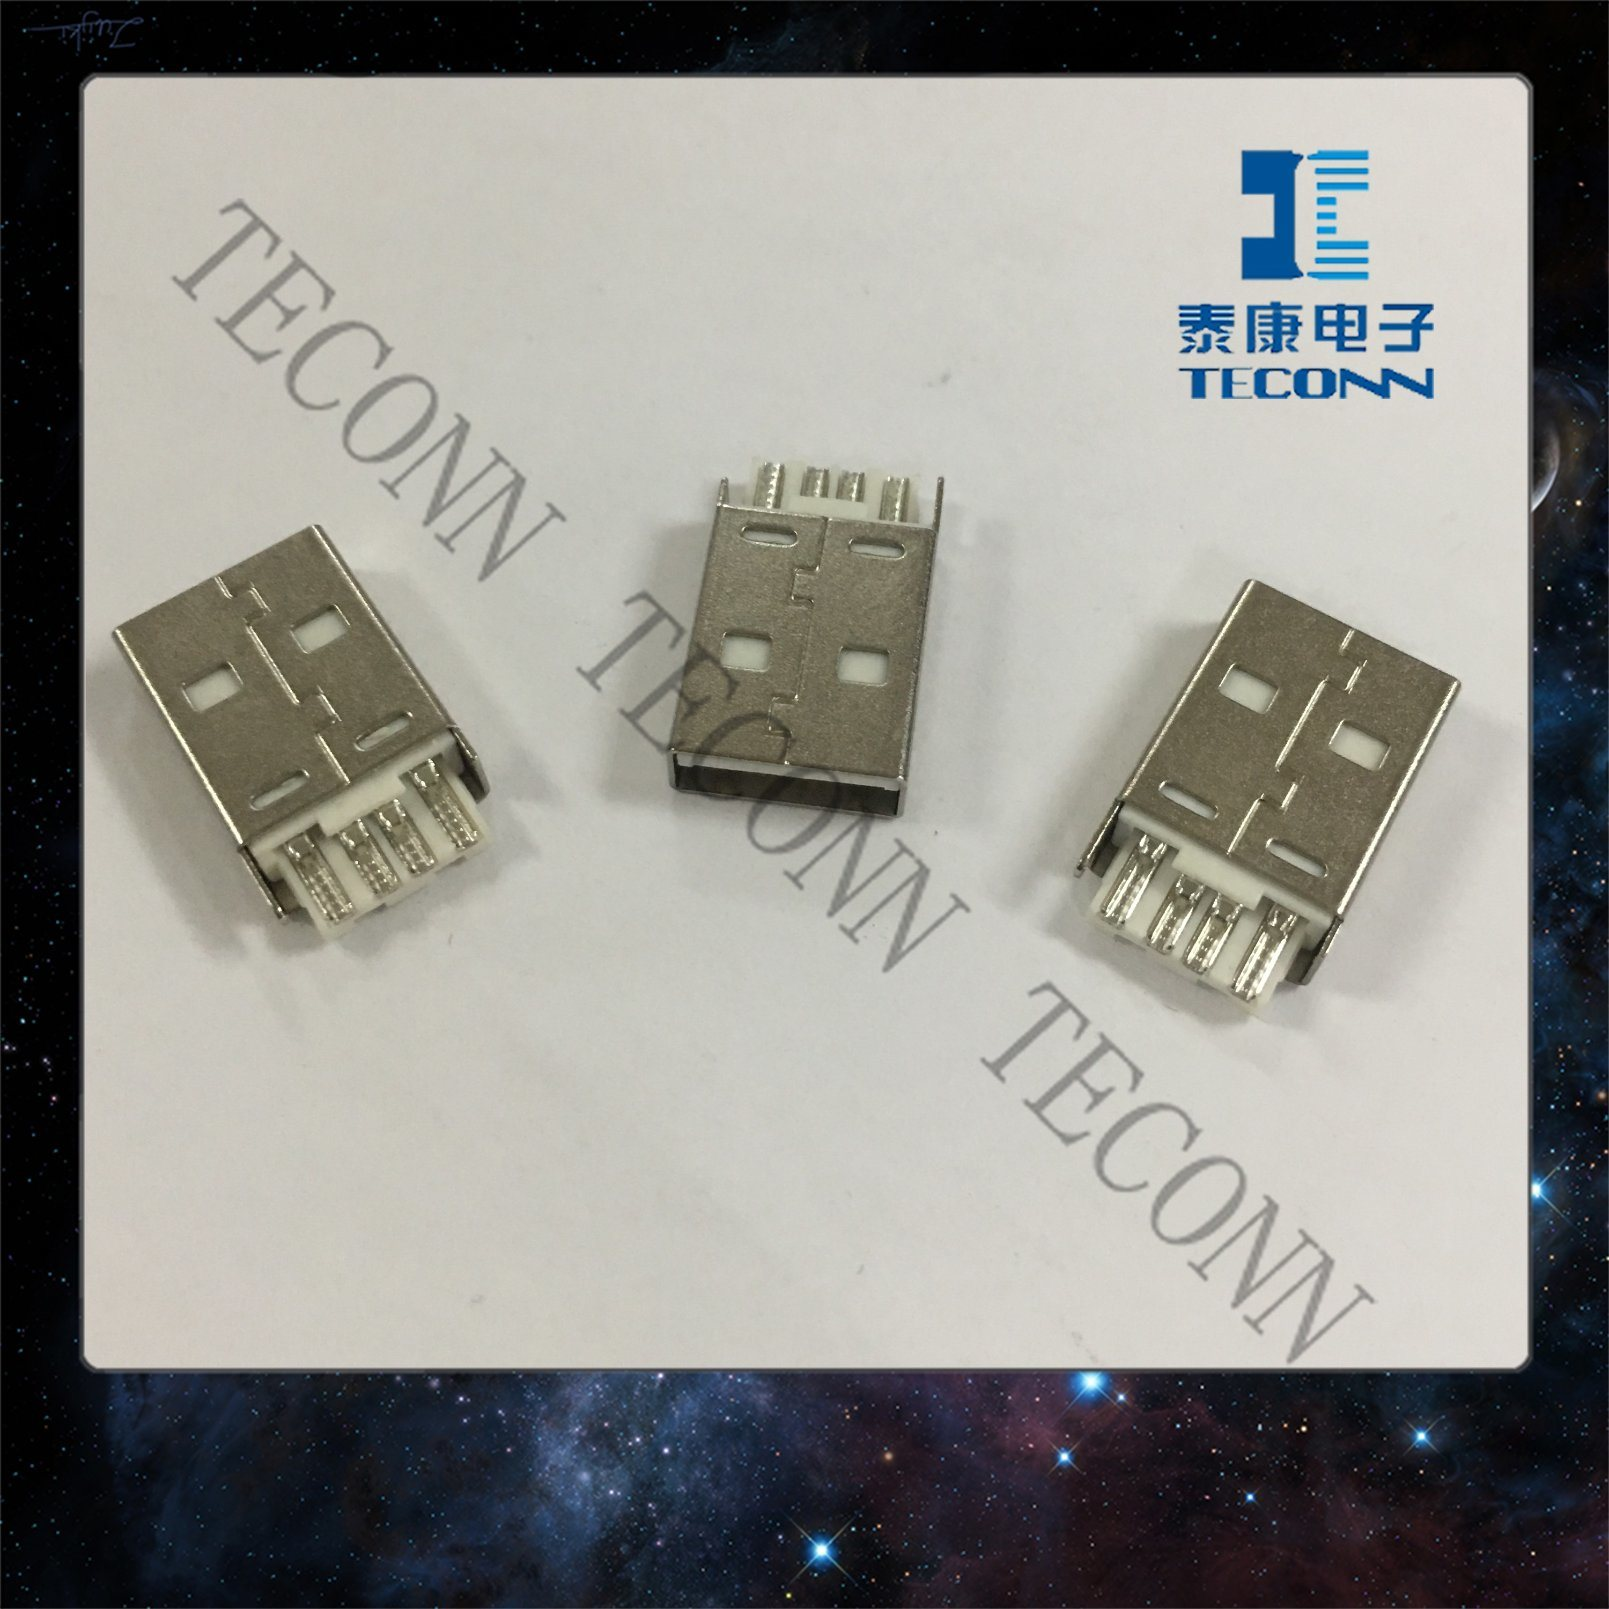 China USB 3.0 Standard - a Receptacle A1s97m - China Connector, USB